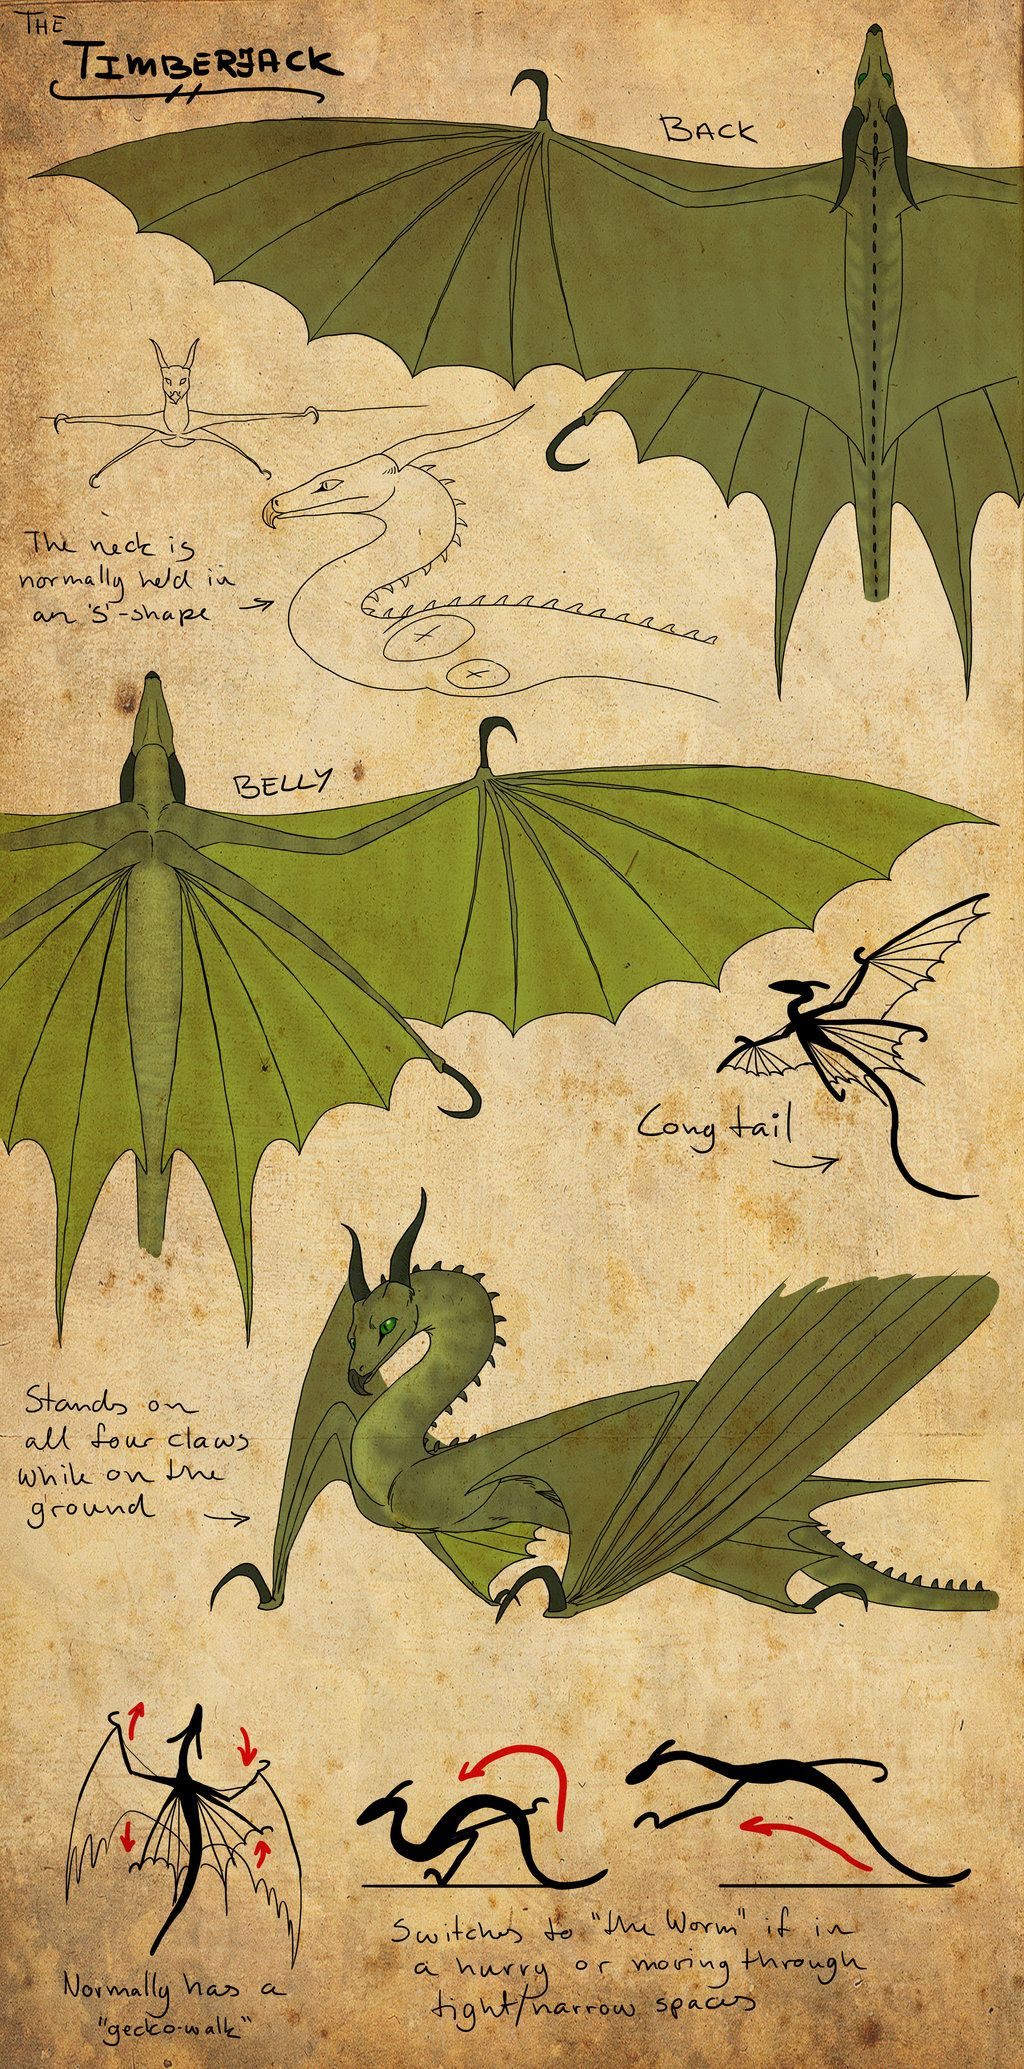 HTTYD: Timberjack by Iceway.deviantart.com on @DeviantArt | How to ...